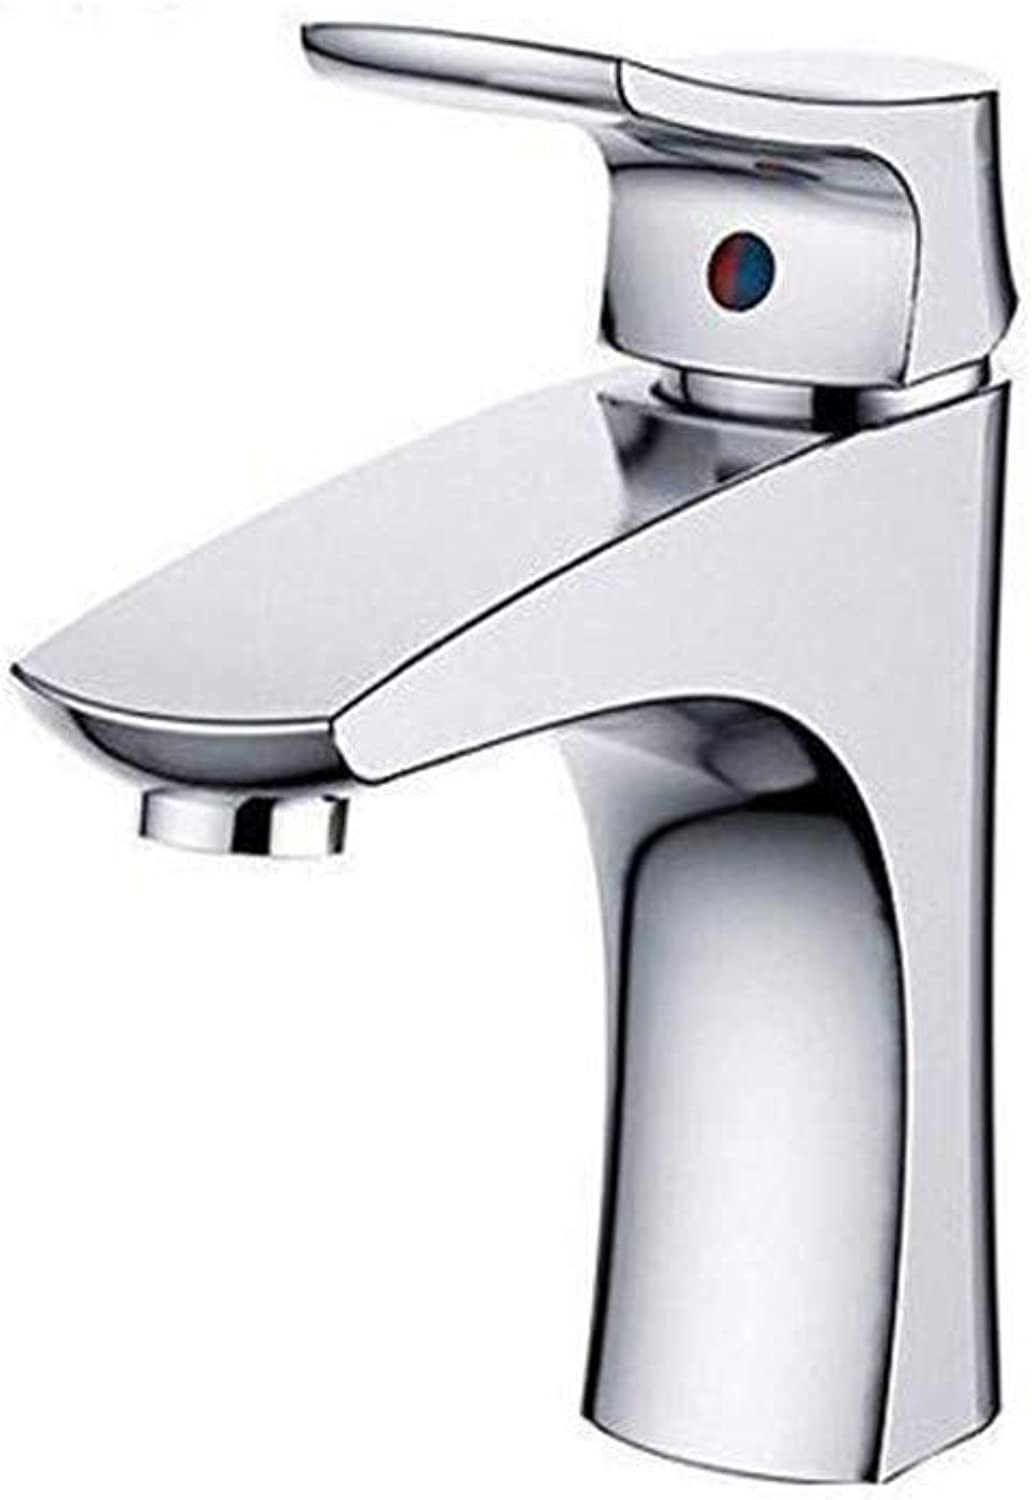 Faucet Chrome Brass Retro Taps Basin Mixer Waterfall Bathroom Chrome Cold and Hot Water Tap Deck Mounted Taps